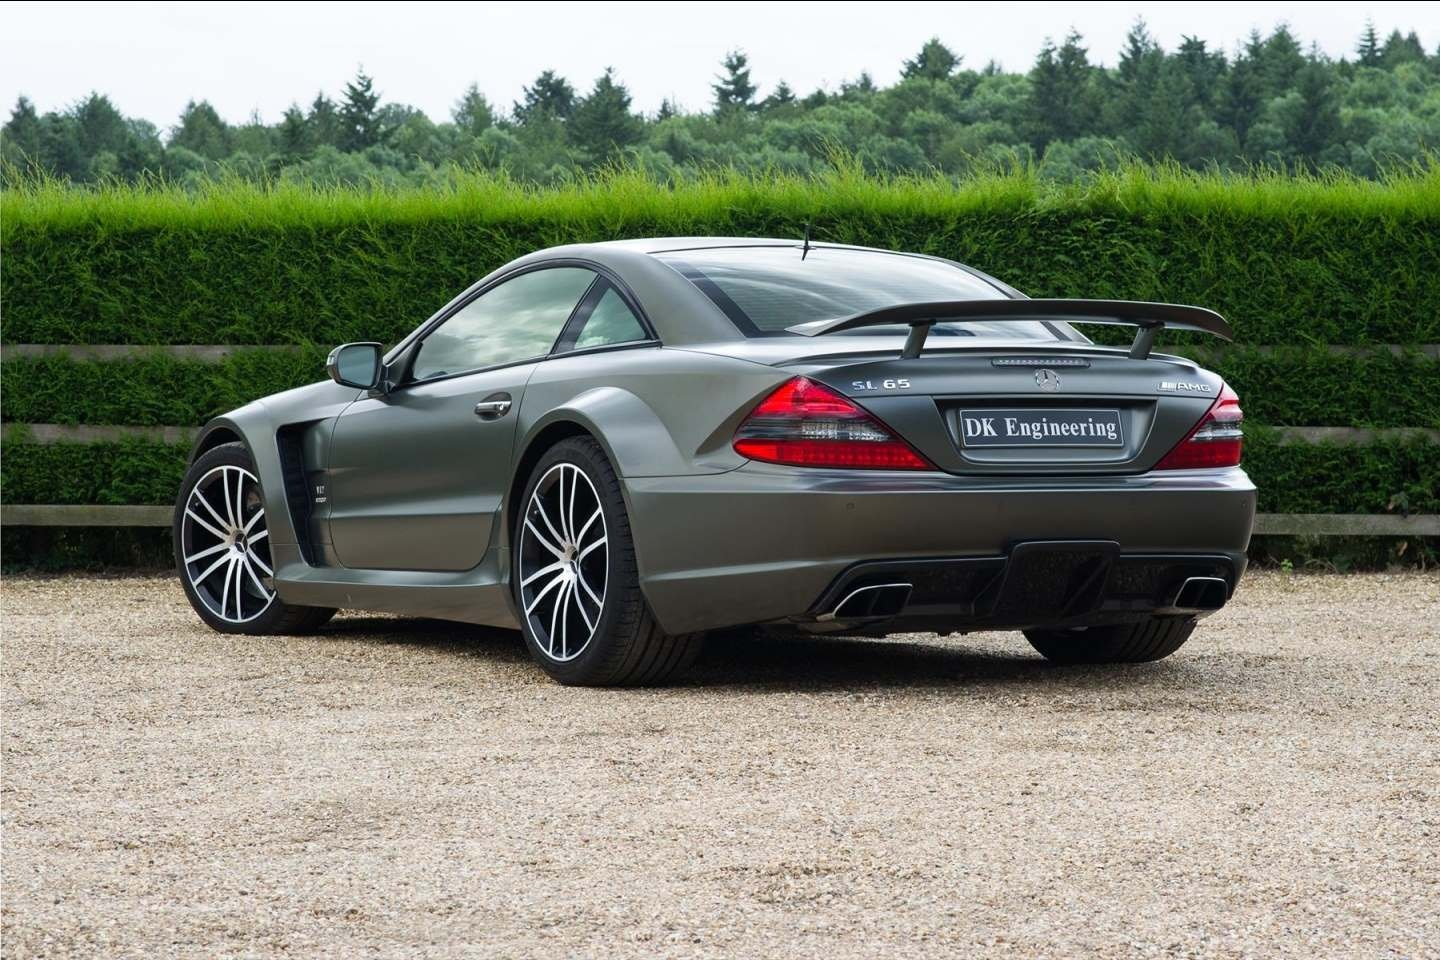 Mercedes benz sl65 amg black series for sale vehicle for Mercedes benz sl65 amg price